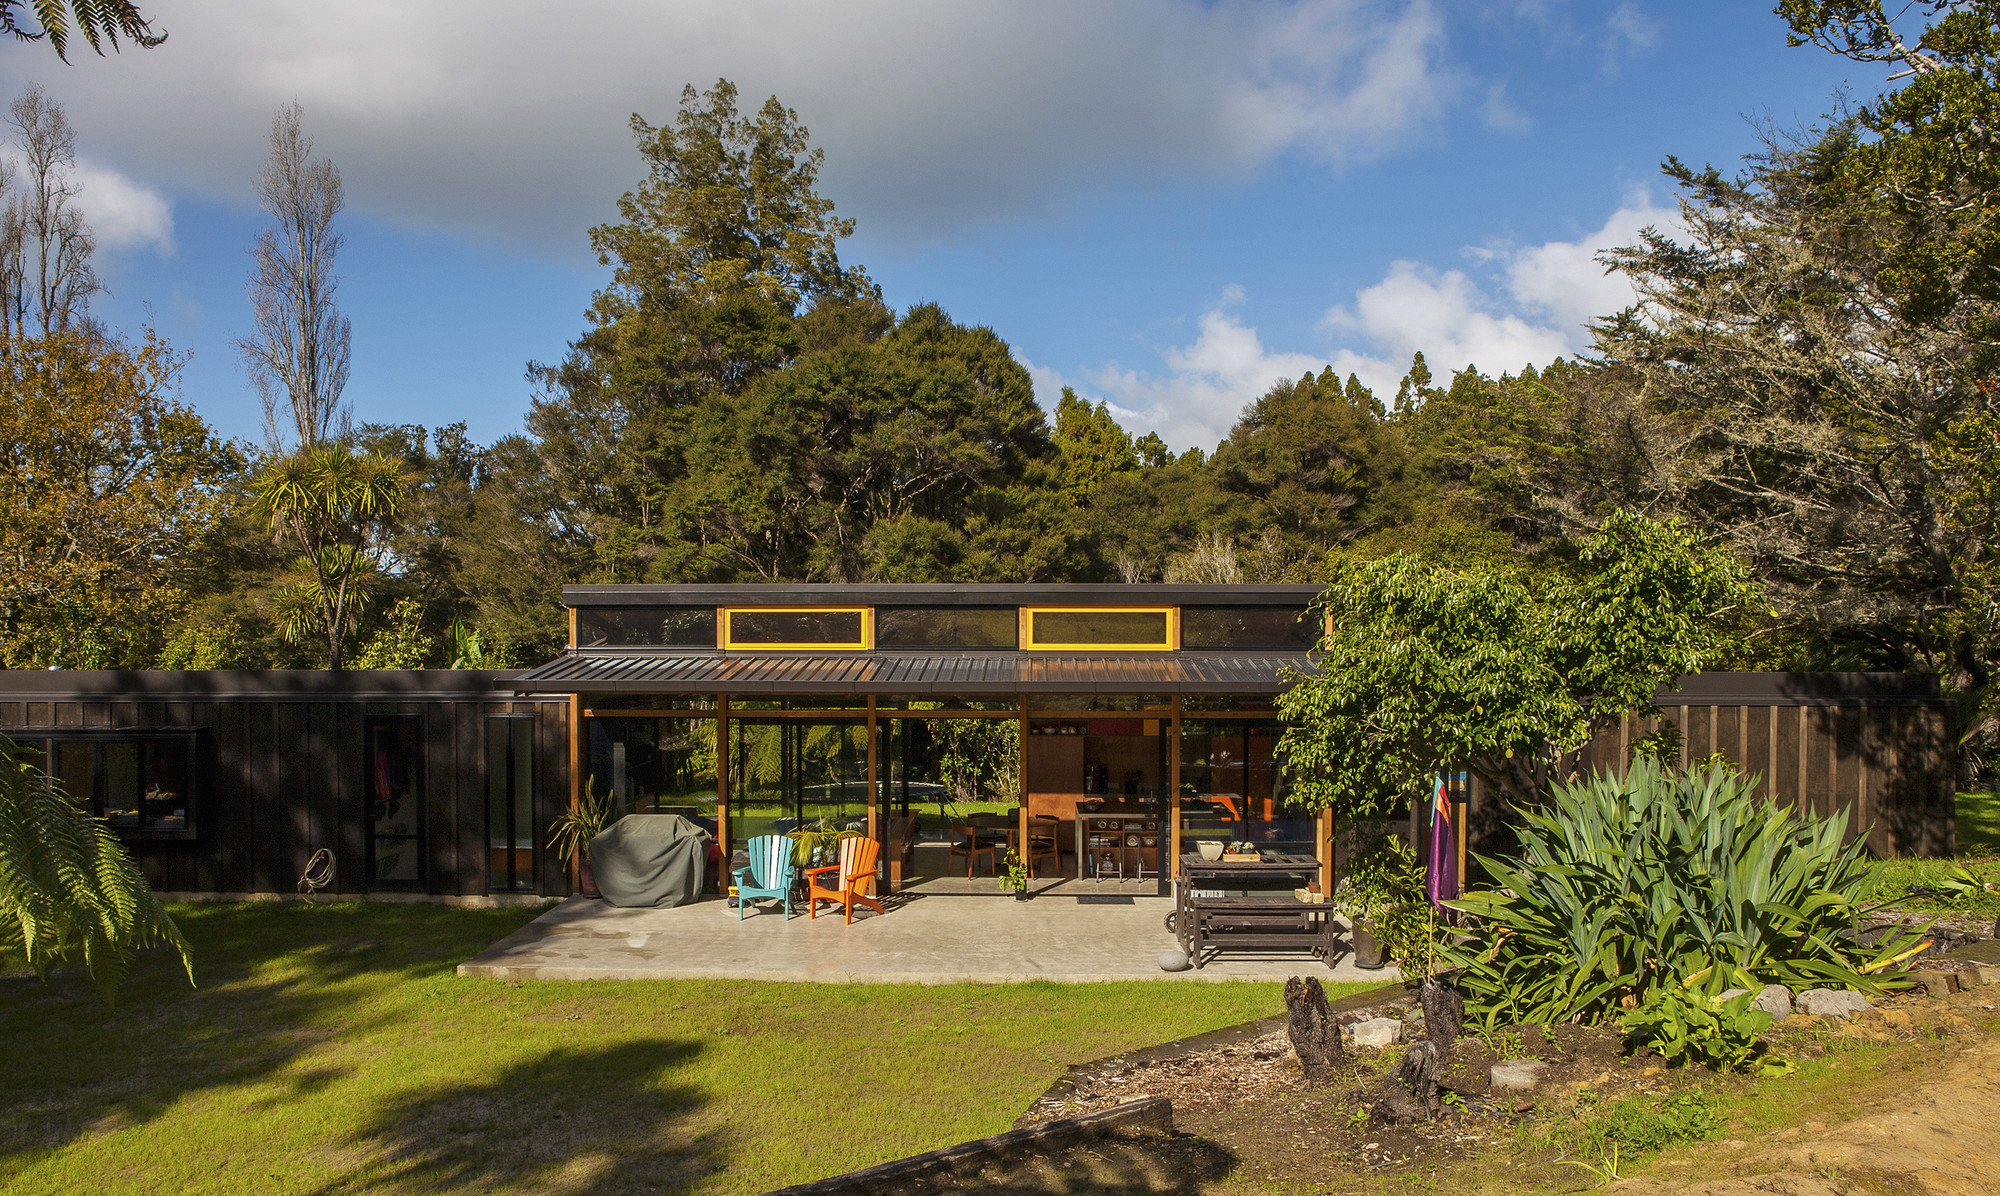 Easterbrook House / Dorrington Atcheson Architects, © Emma-Jane Hetherington